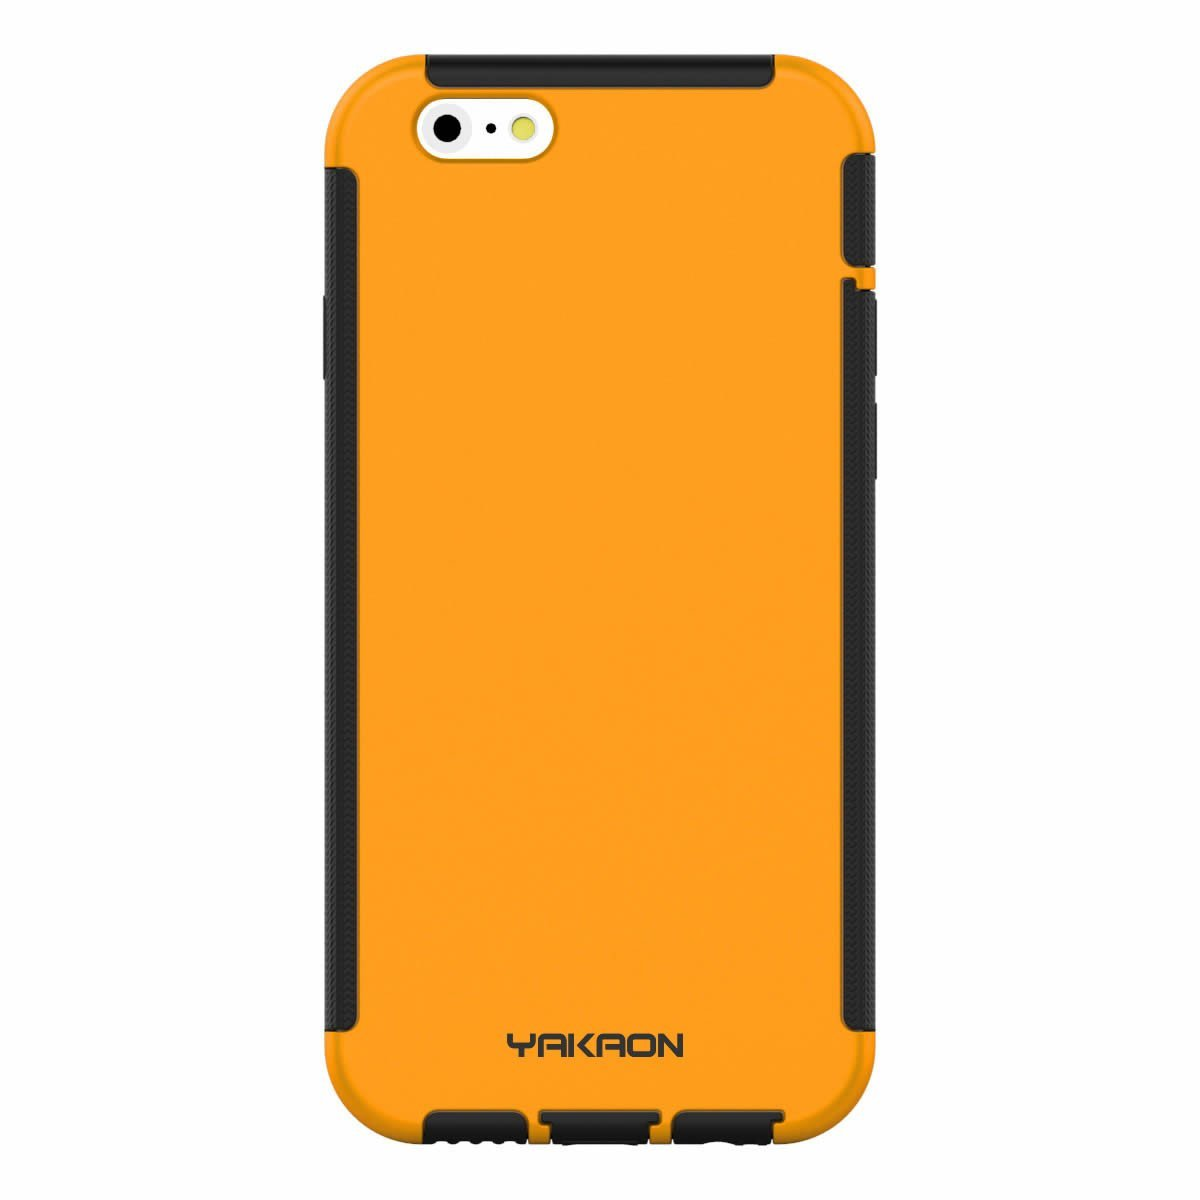 Durable Shatterproof, Dustproof, Shockproof Protective Case for iPhone 5S yellow